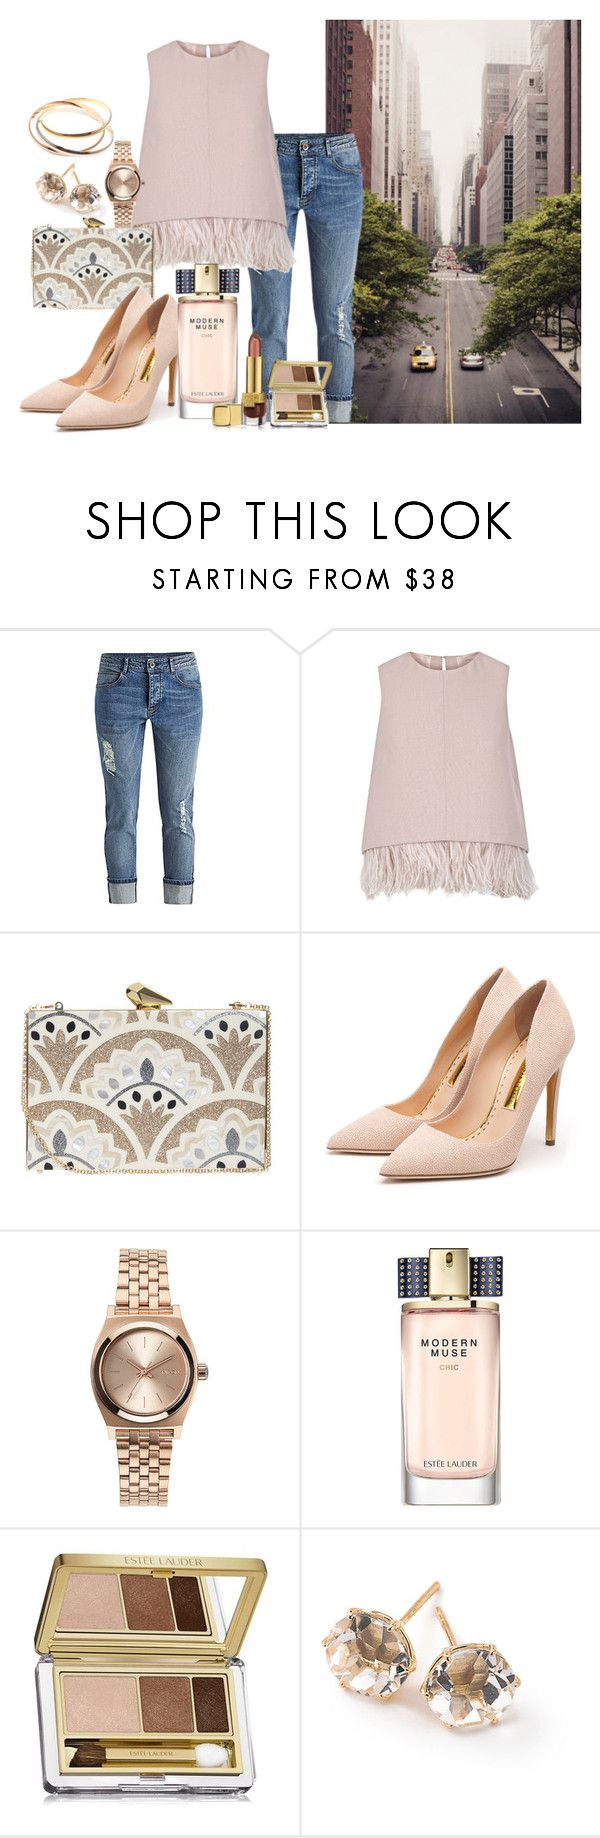 new york by sally-w on Polyvore featuring The 2nd Skin Co., Rupert Sanderson, KOTUR, Cartier, Nixon, Ippolita, Estée Lauder, women's clothing, women's fashion and women